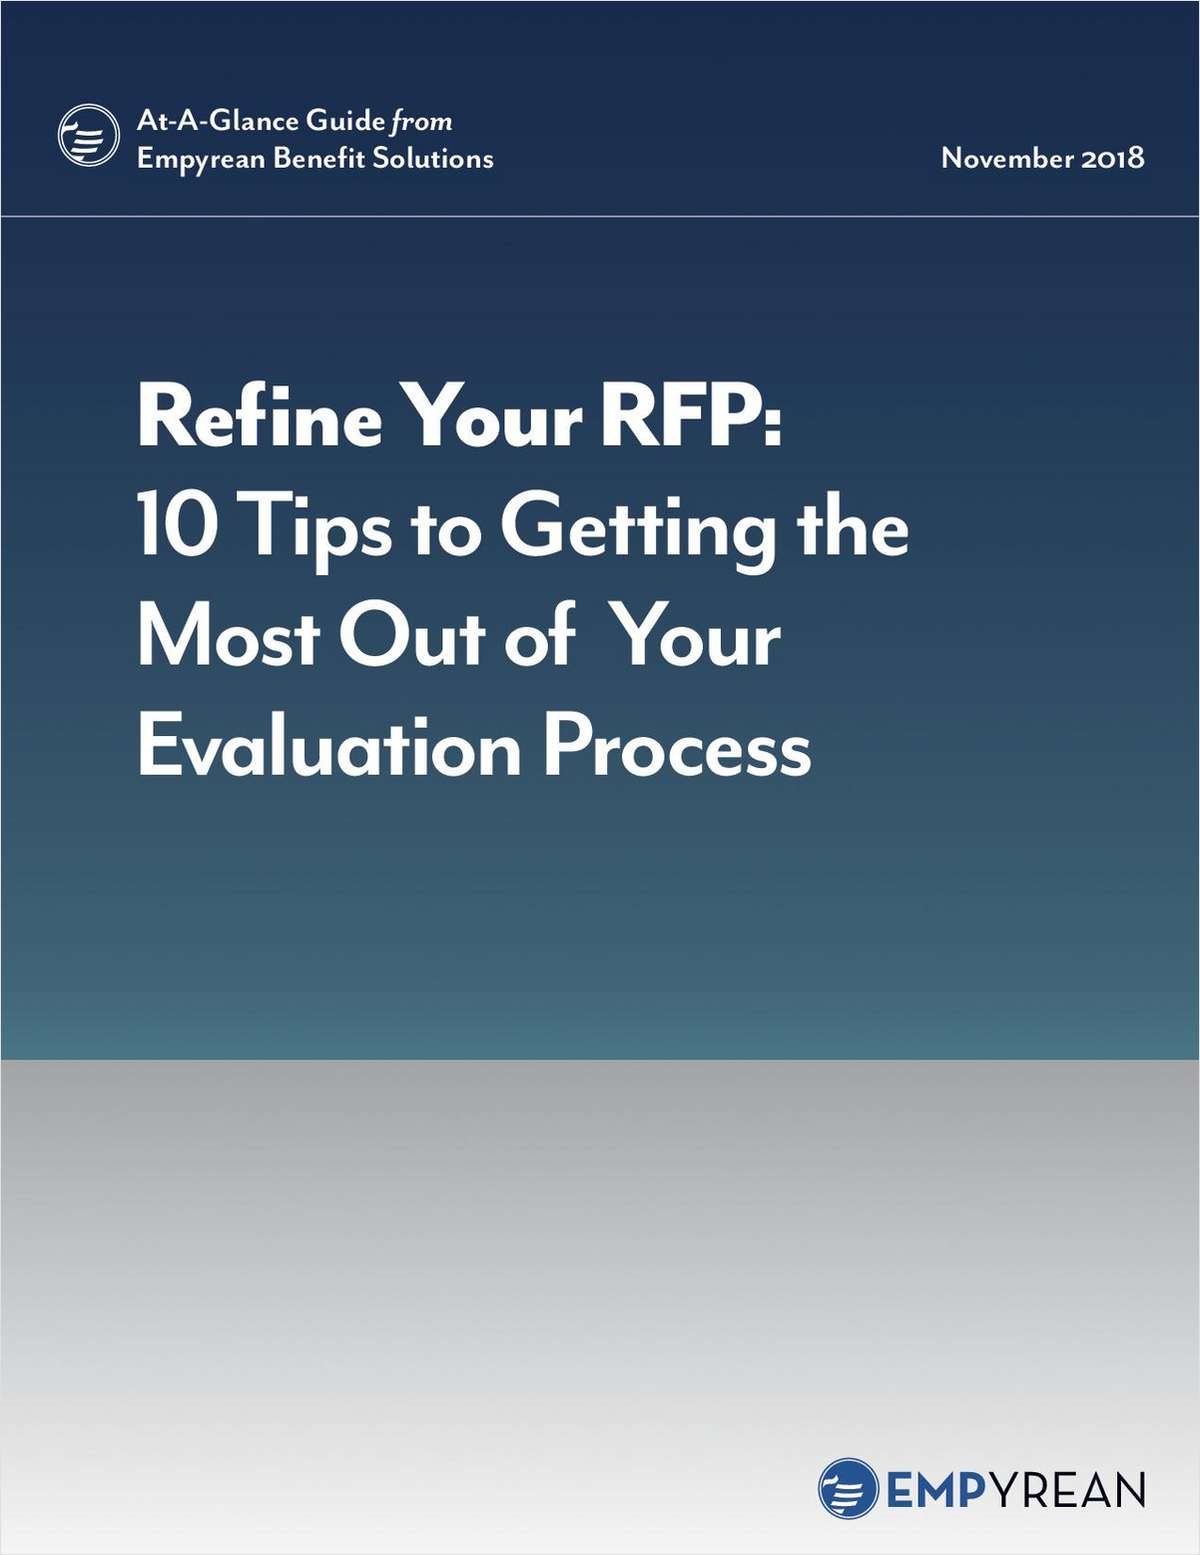 Refine Your RFP: 10 Tips to Getting the Most Out of Your